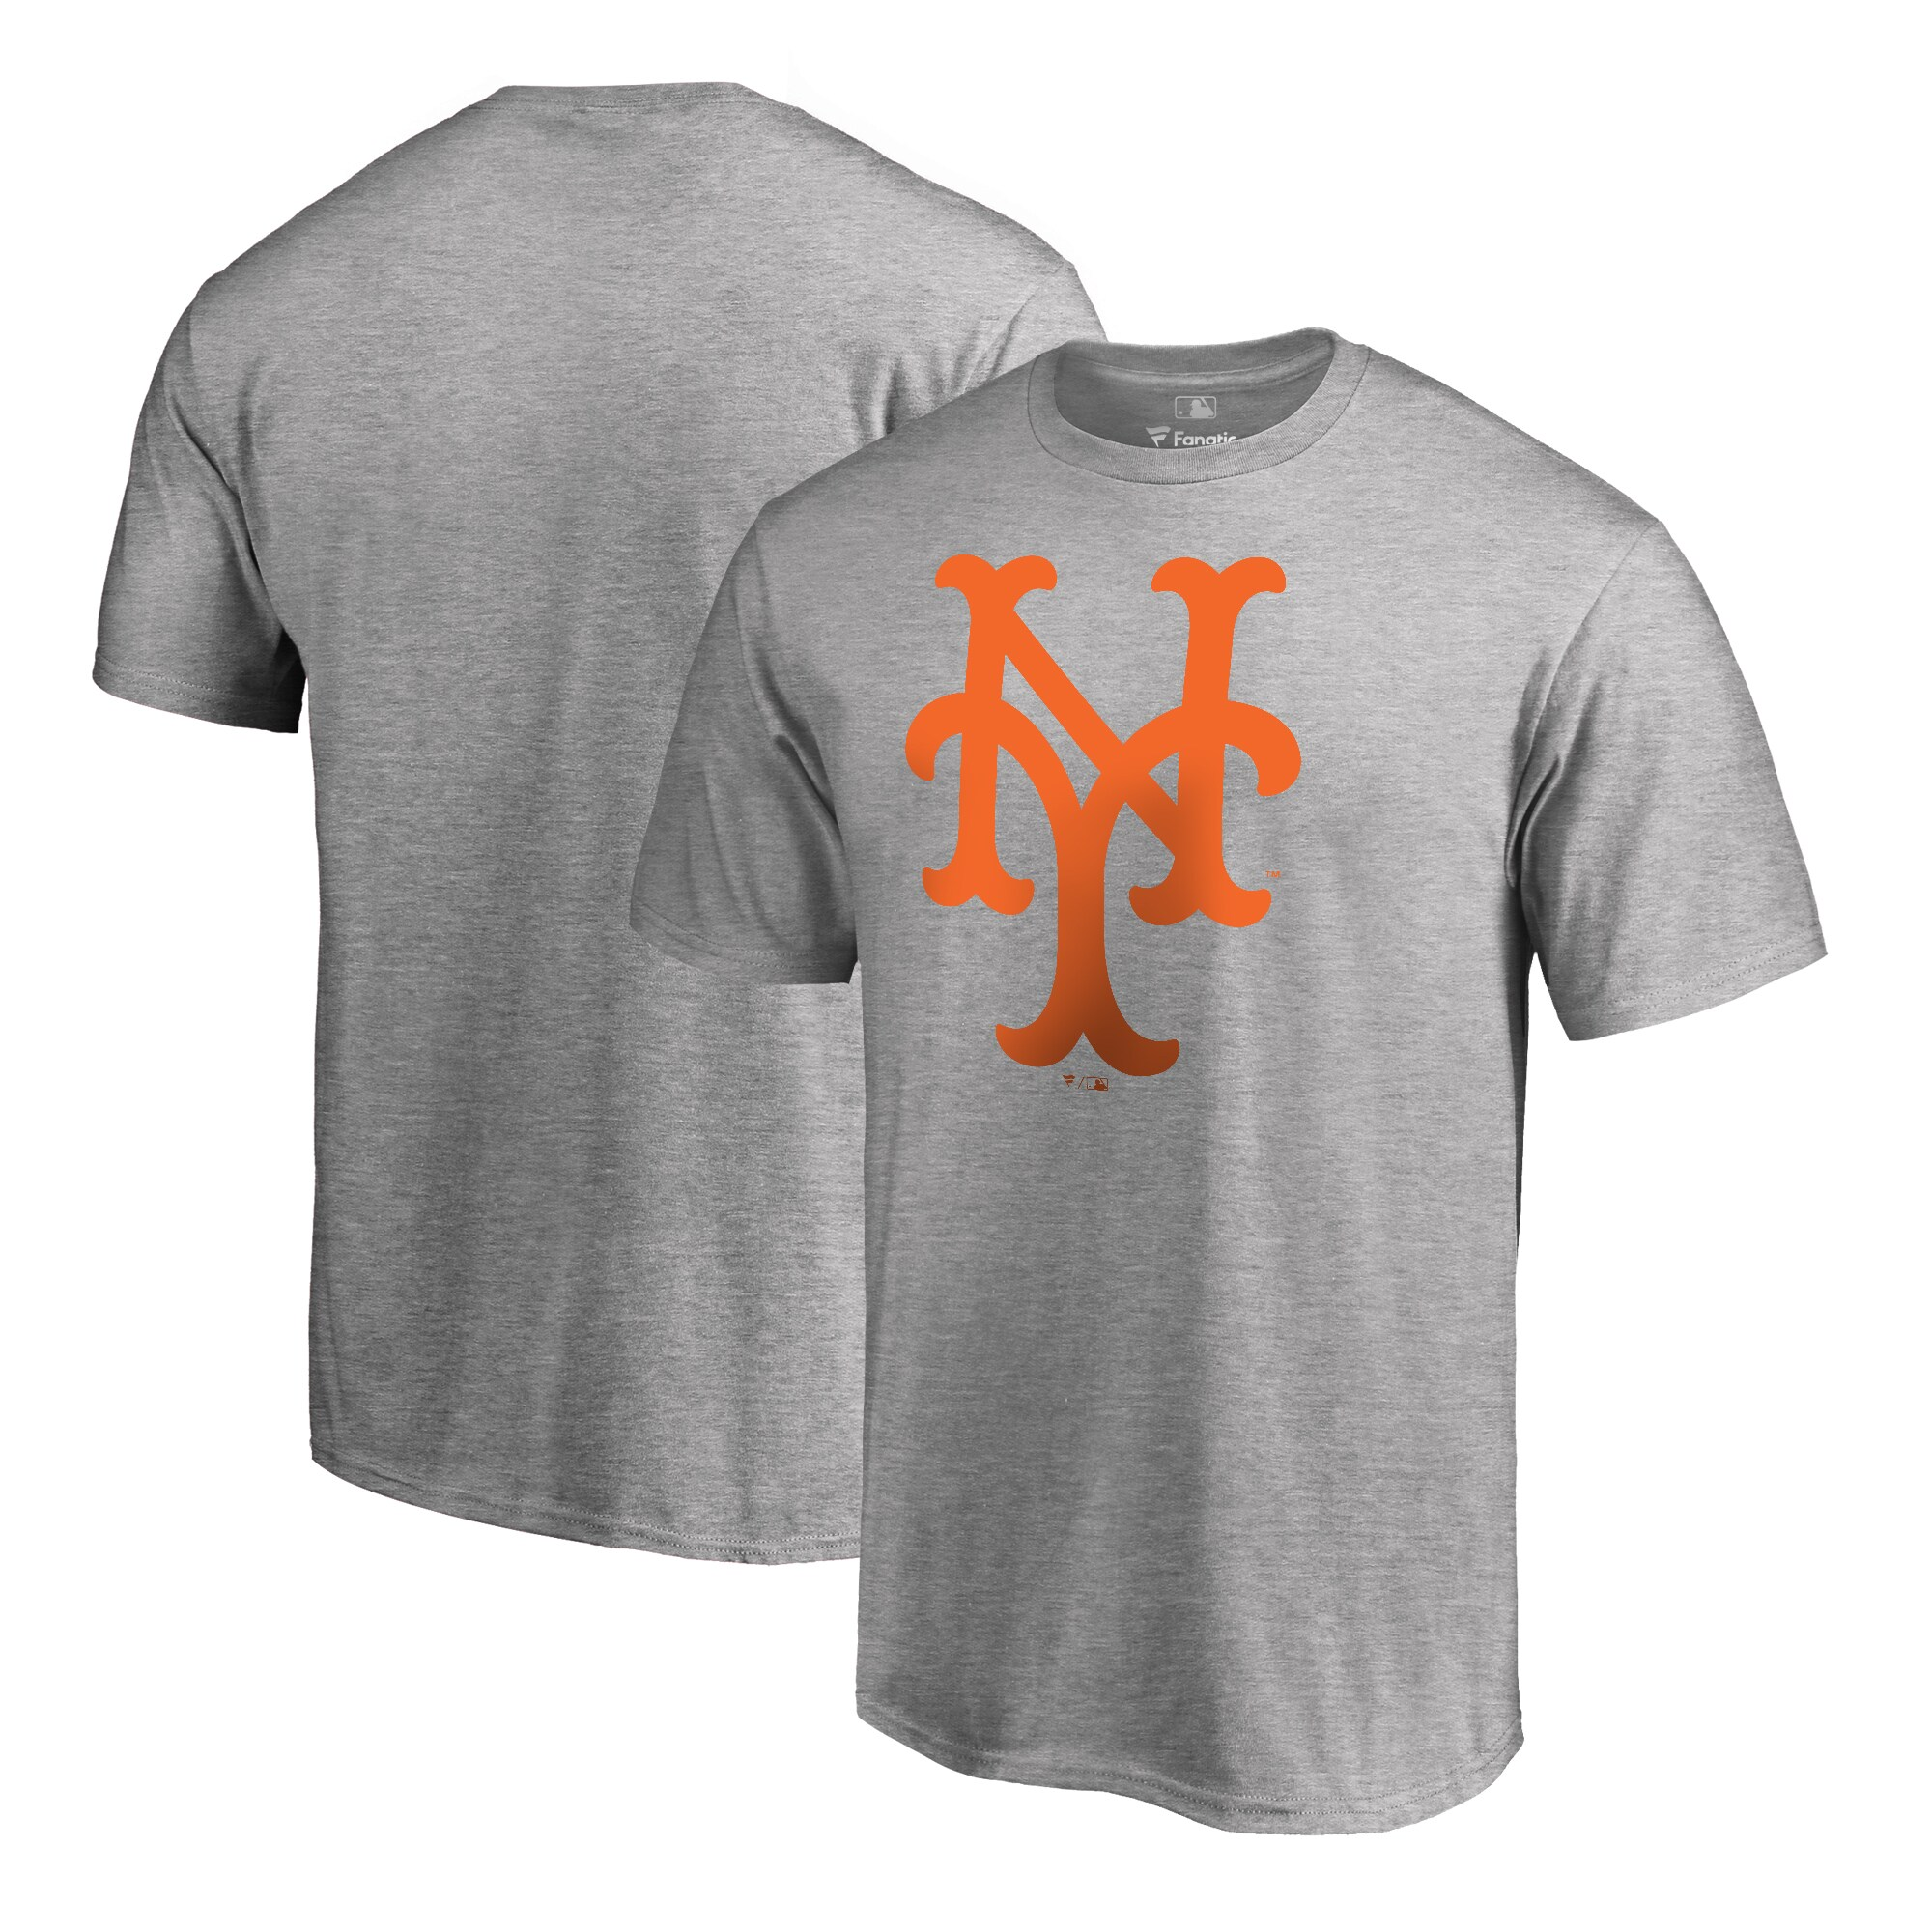 New York Mets Fanatics Branded Cooperstown Collection Huntington T-Shirt - Ash